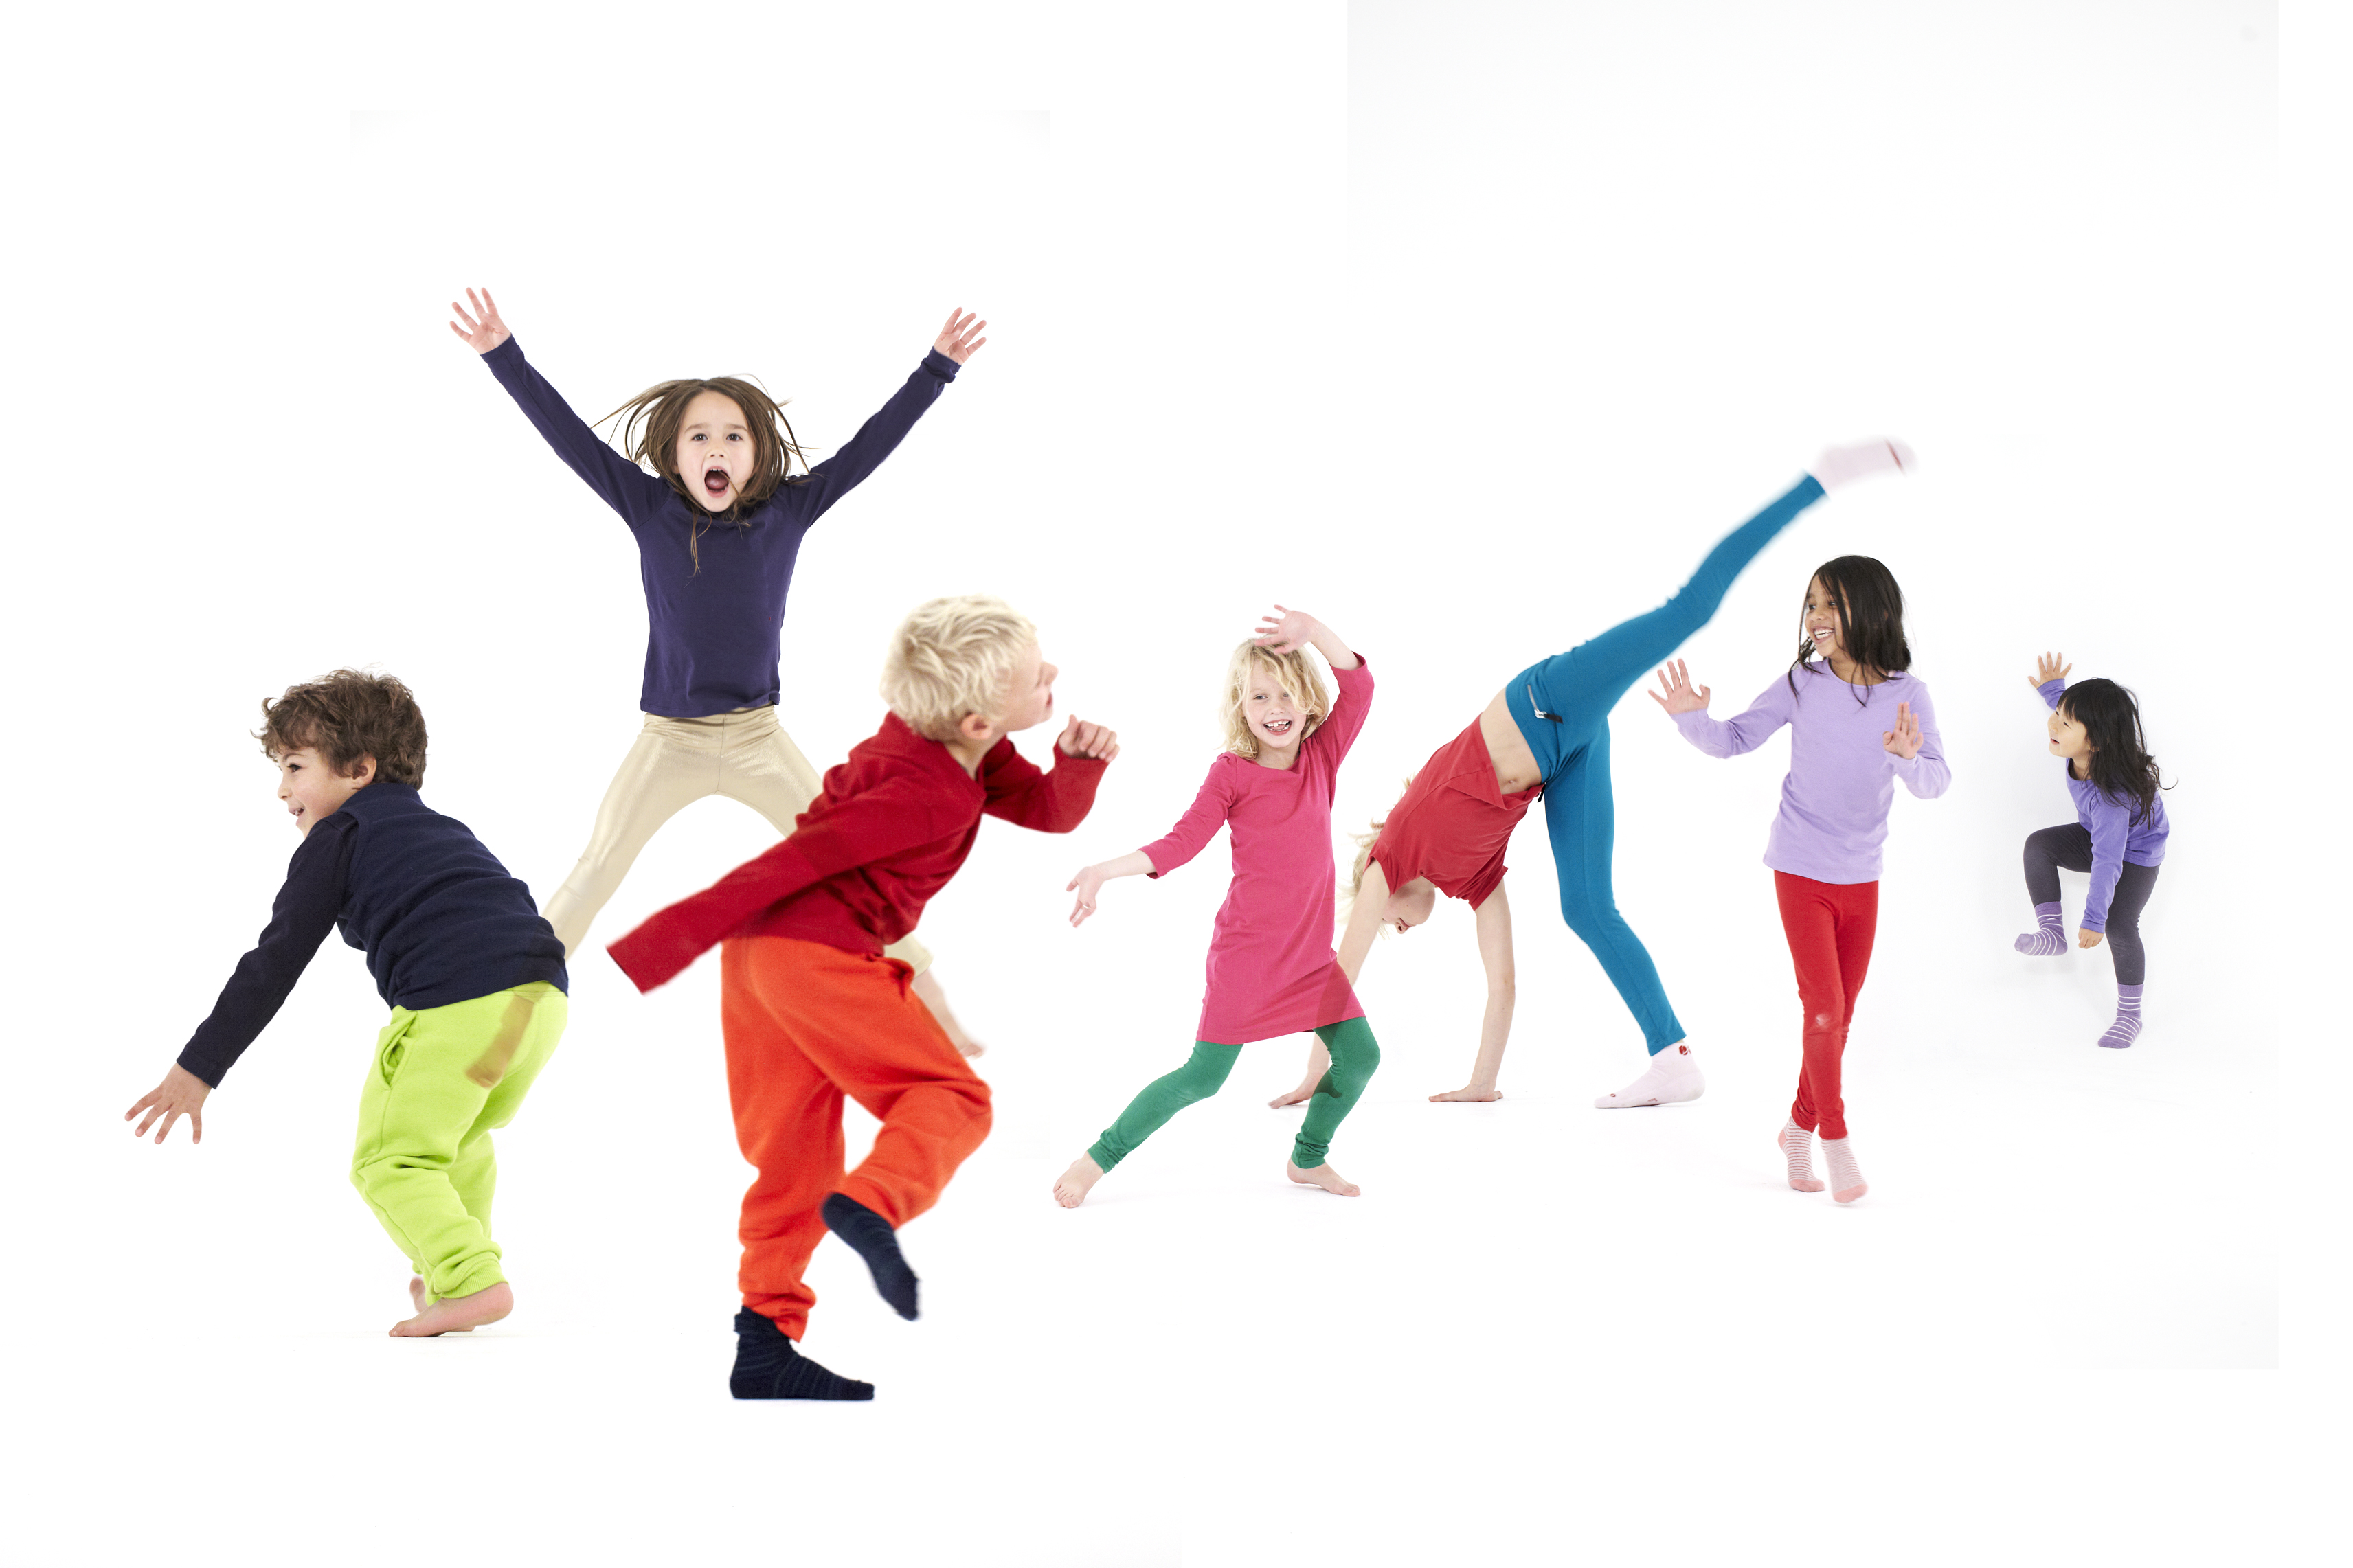 Lakshya Dance Unlimited - Kids Dancing PNG HD